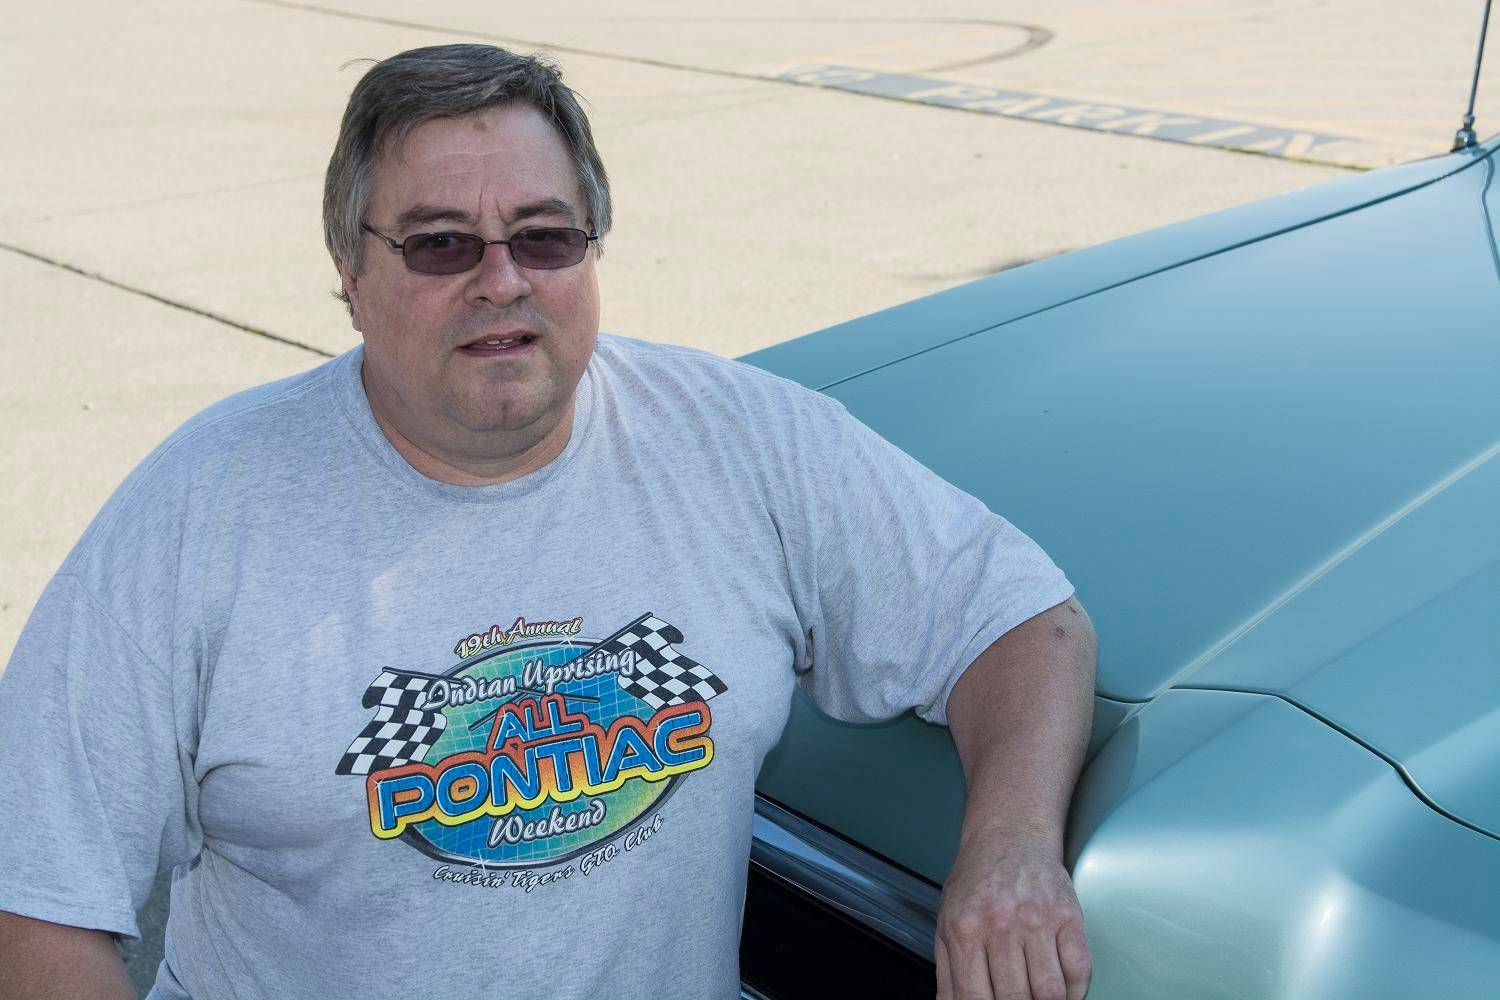 Jim Lindberg of Rolling Meadows spent seven months restoring his customized Pontiac back to original condition.